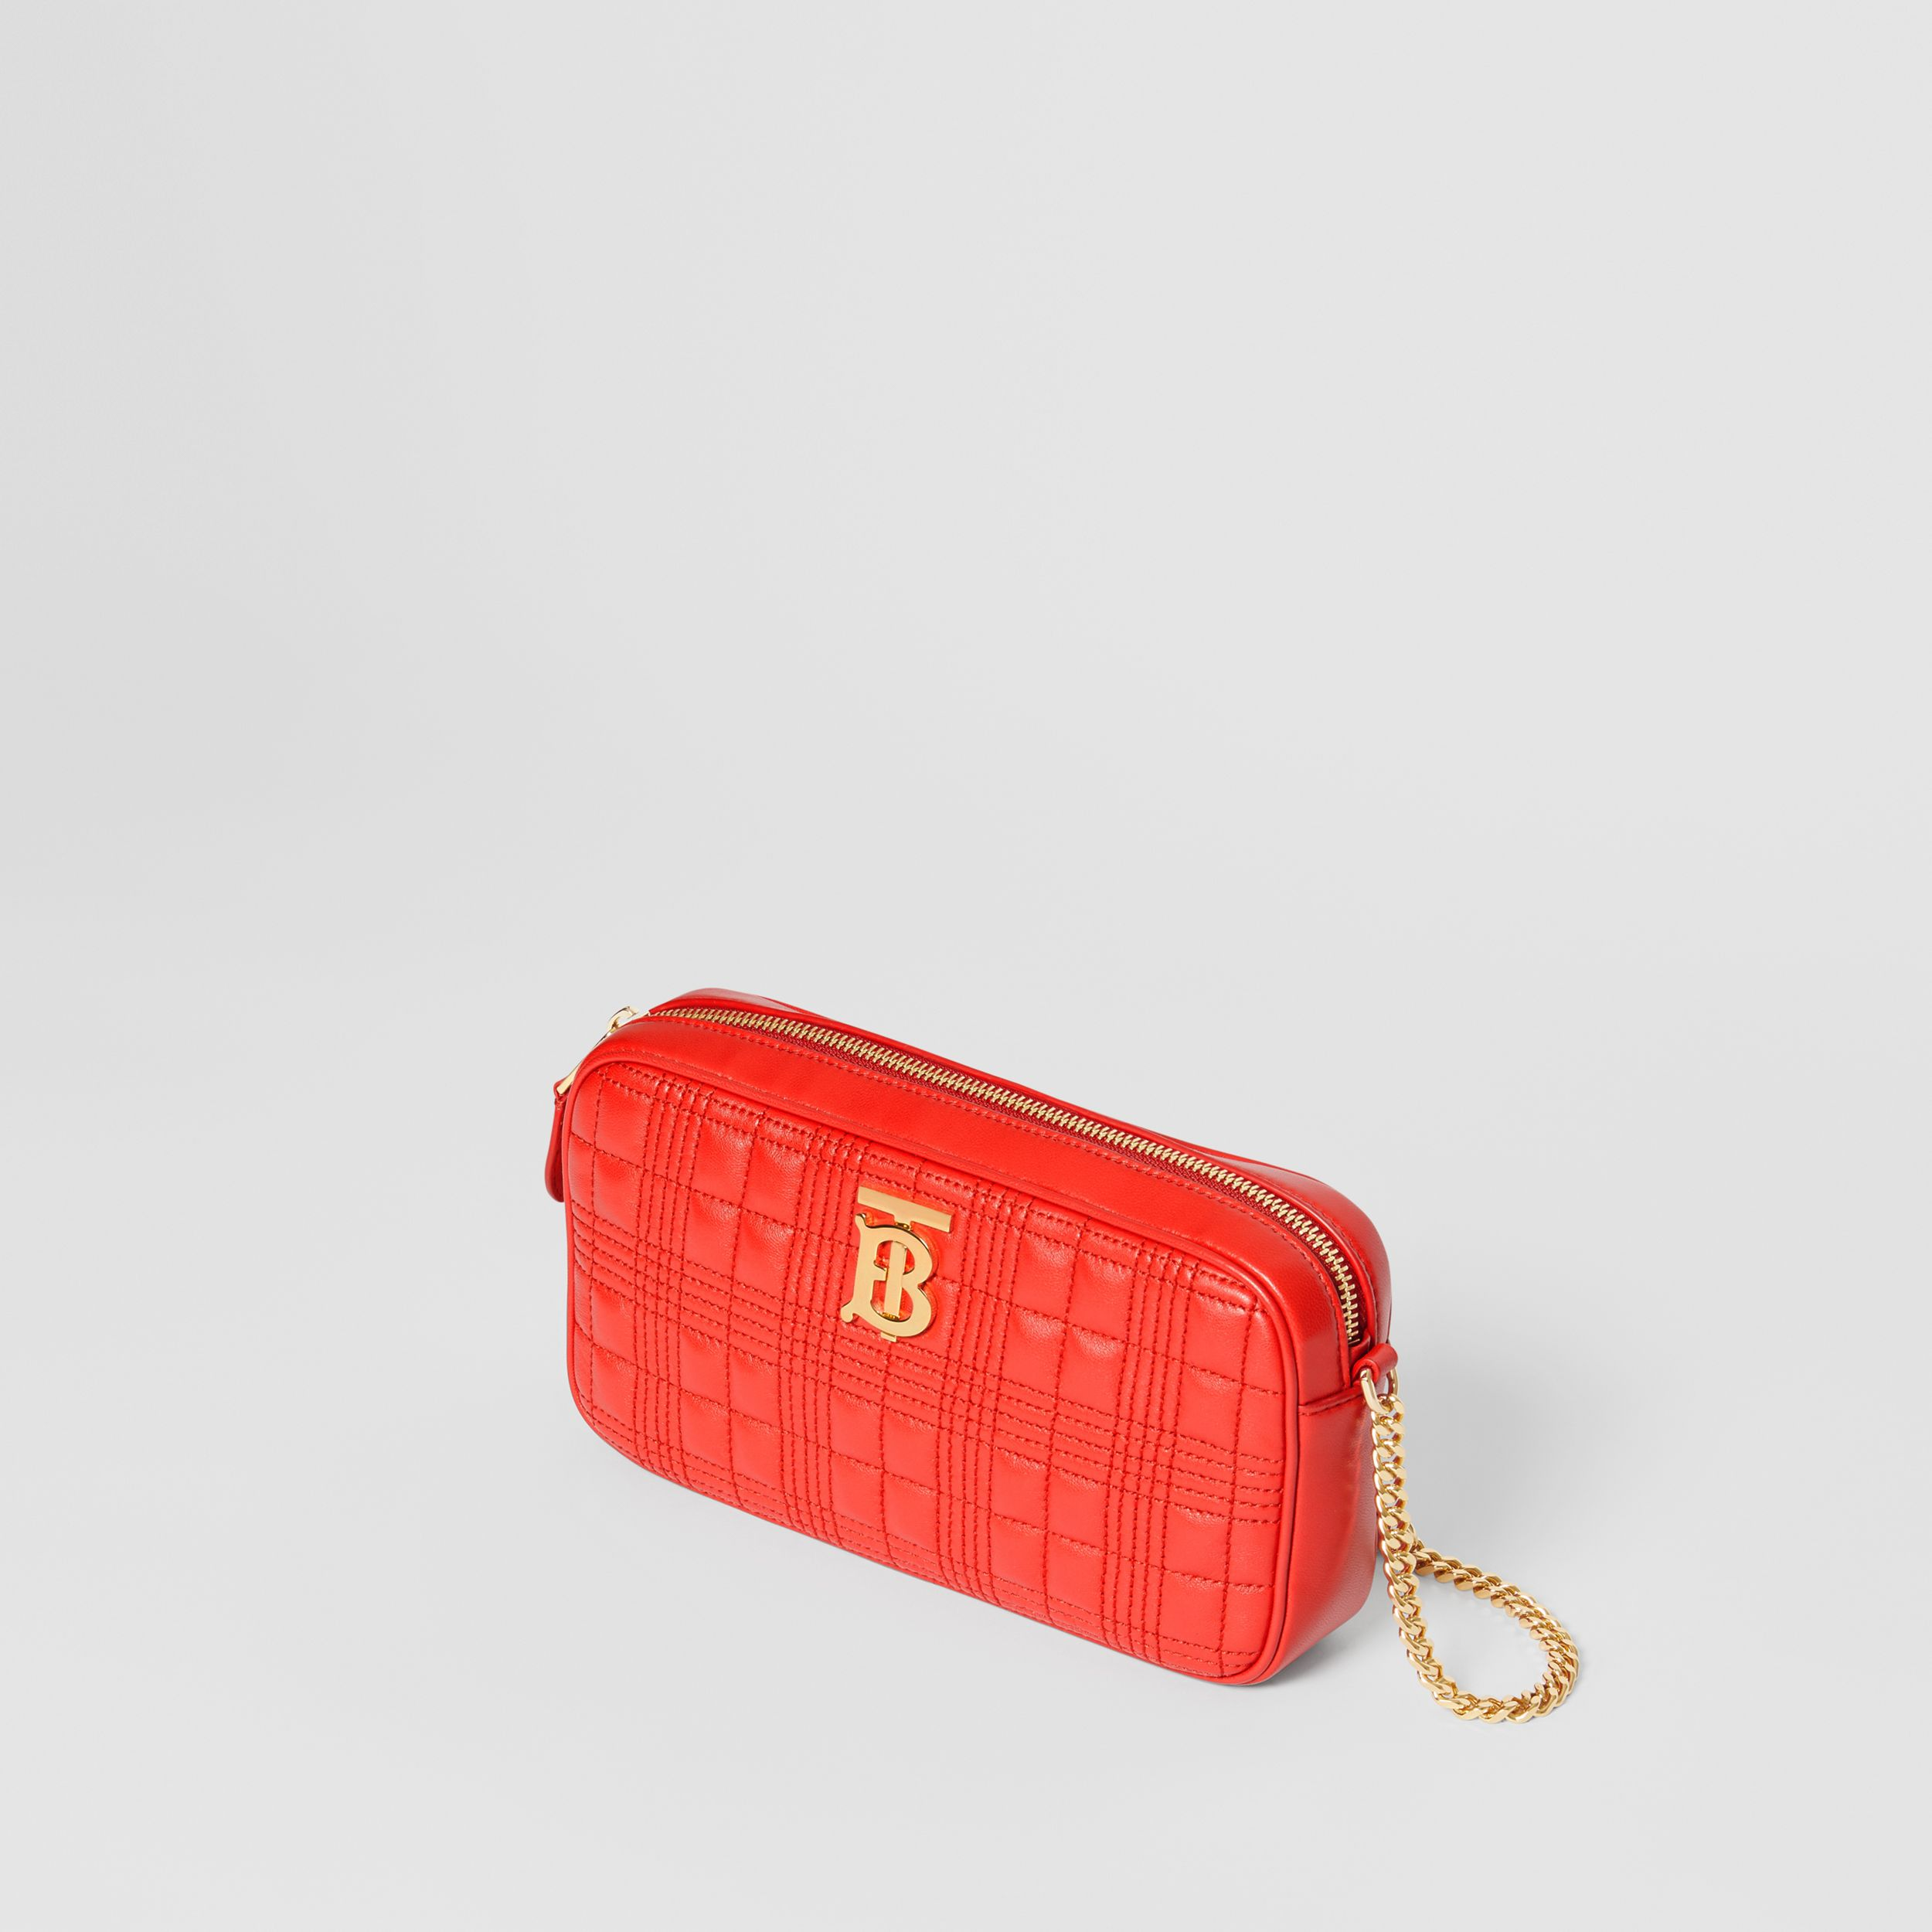 Quilted Lambskin Camera Bag in Bright Red - Women | Burberry - 4